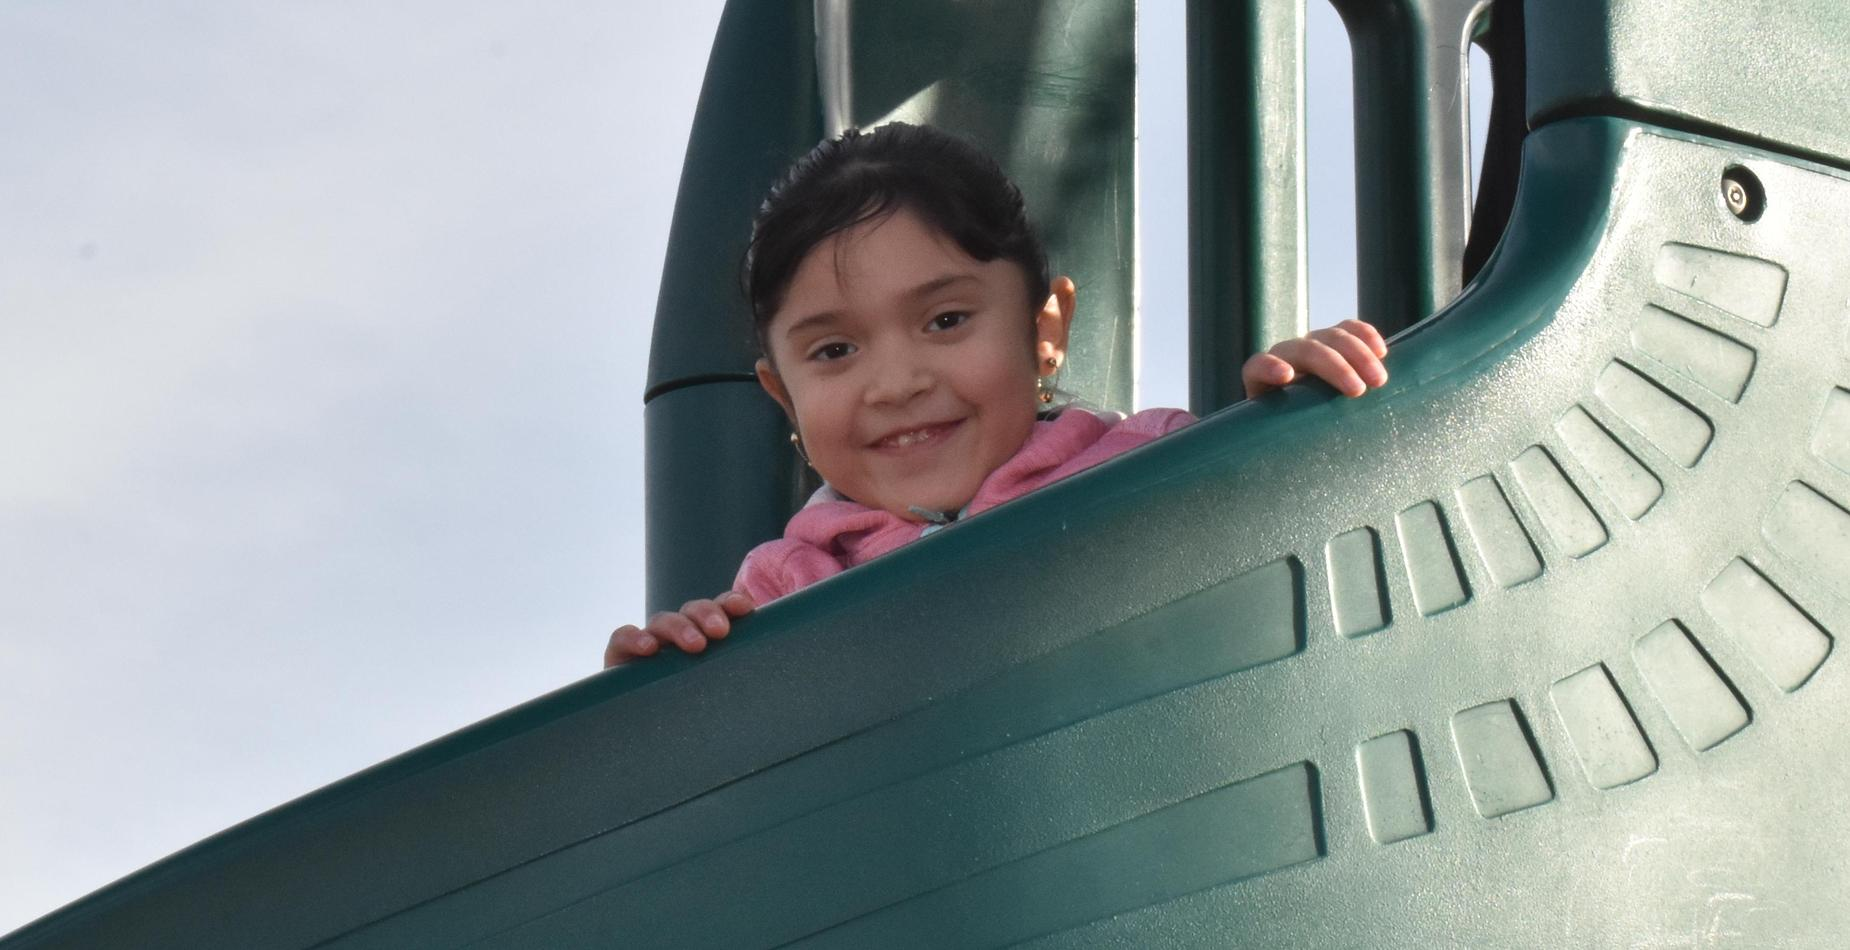 A little girl getting ready to go down the slide at recess time.